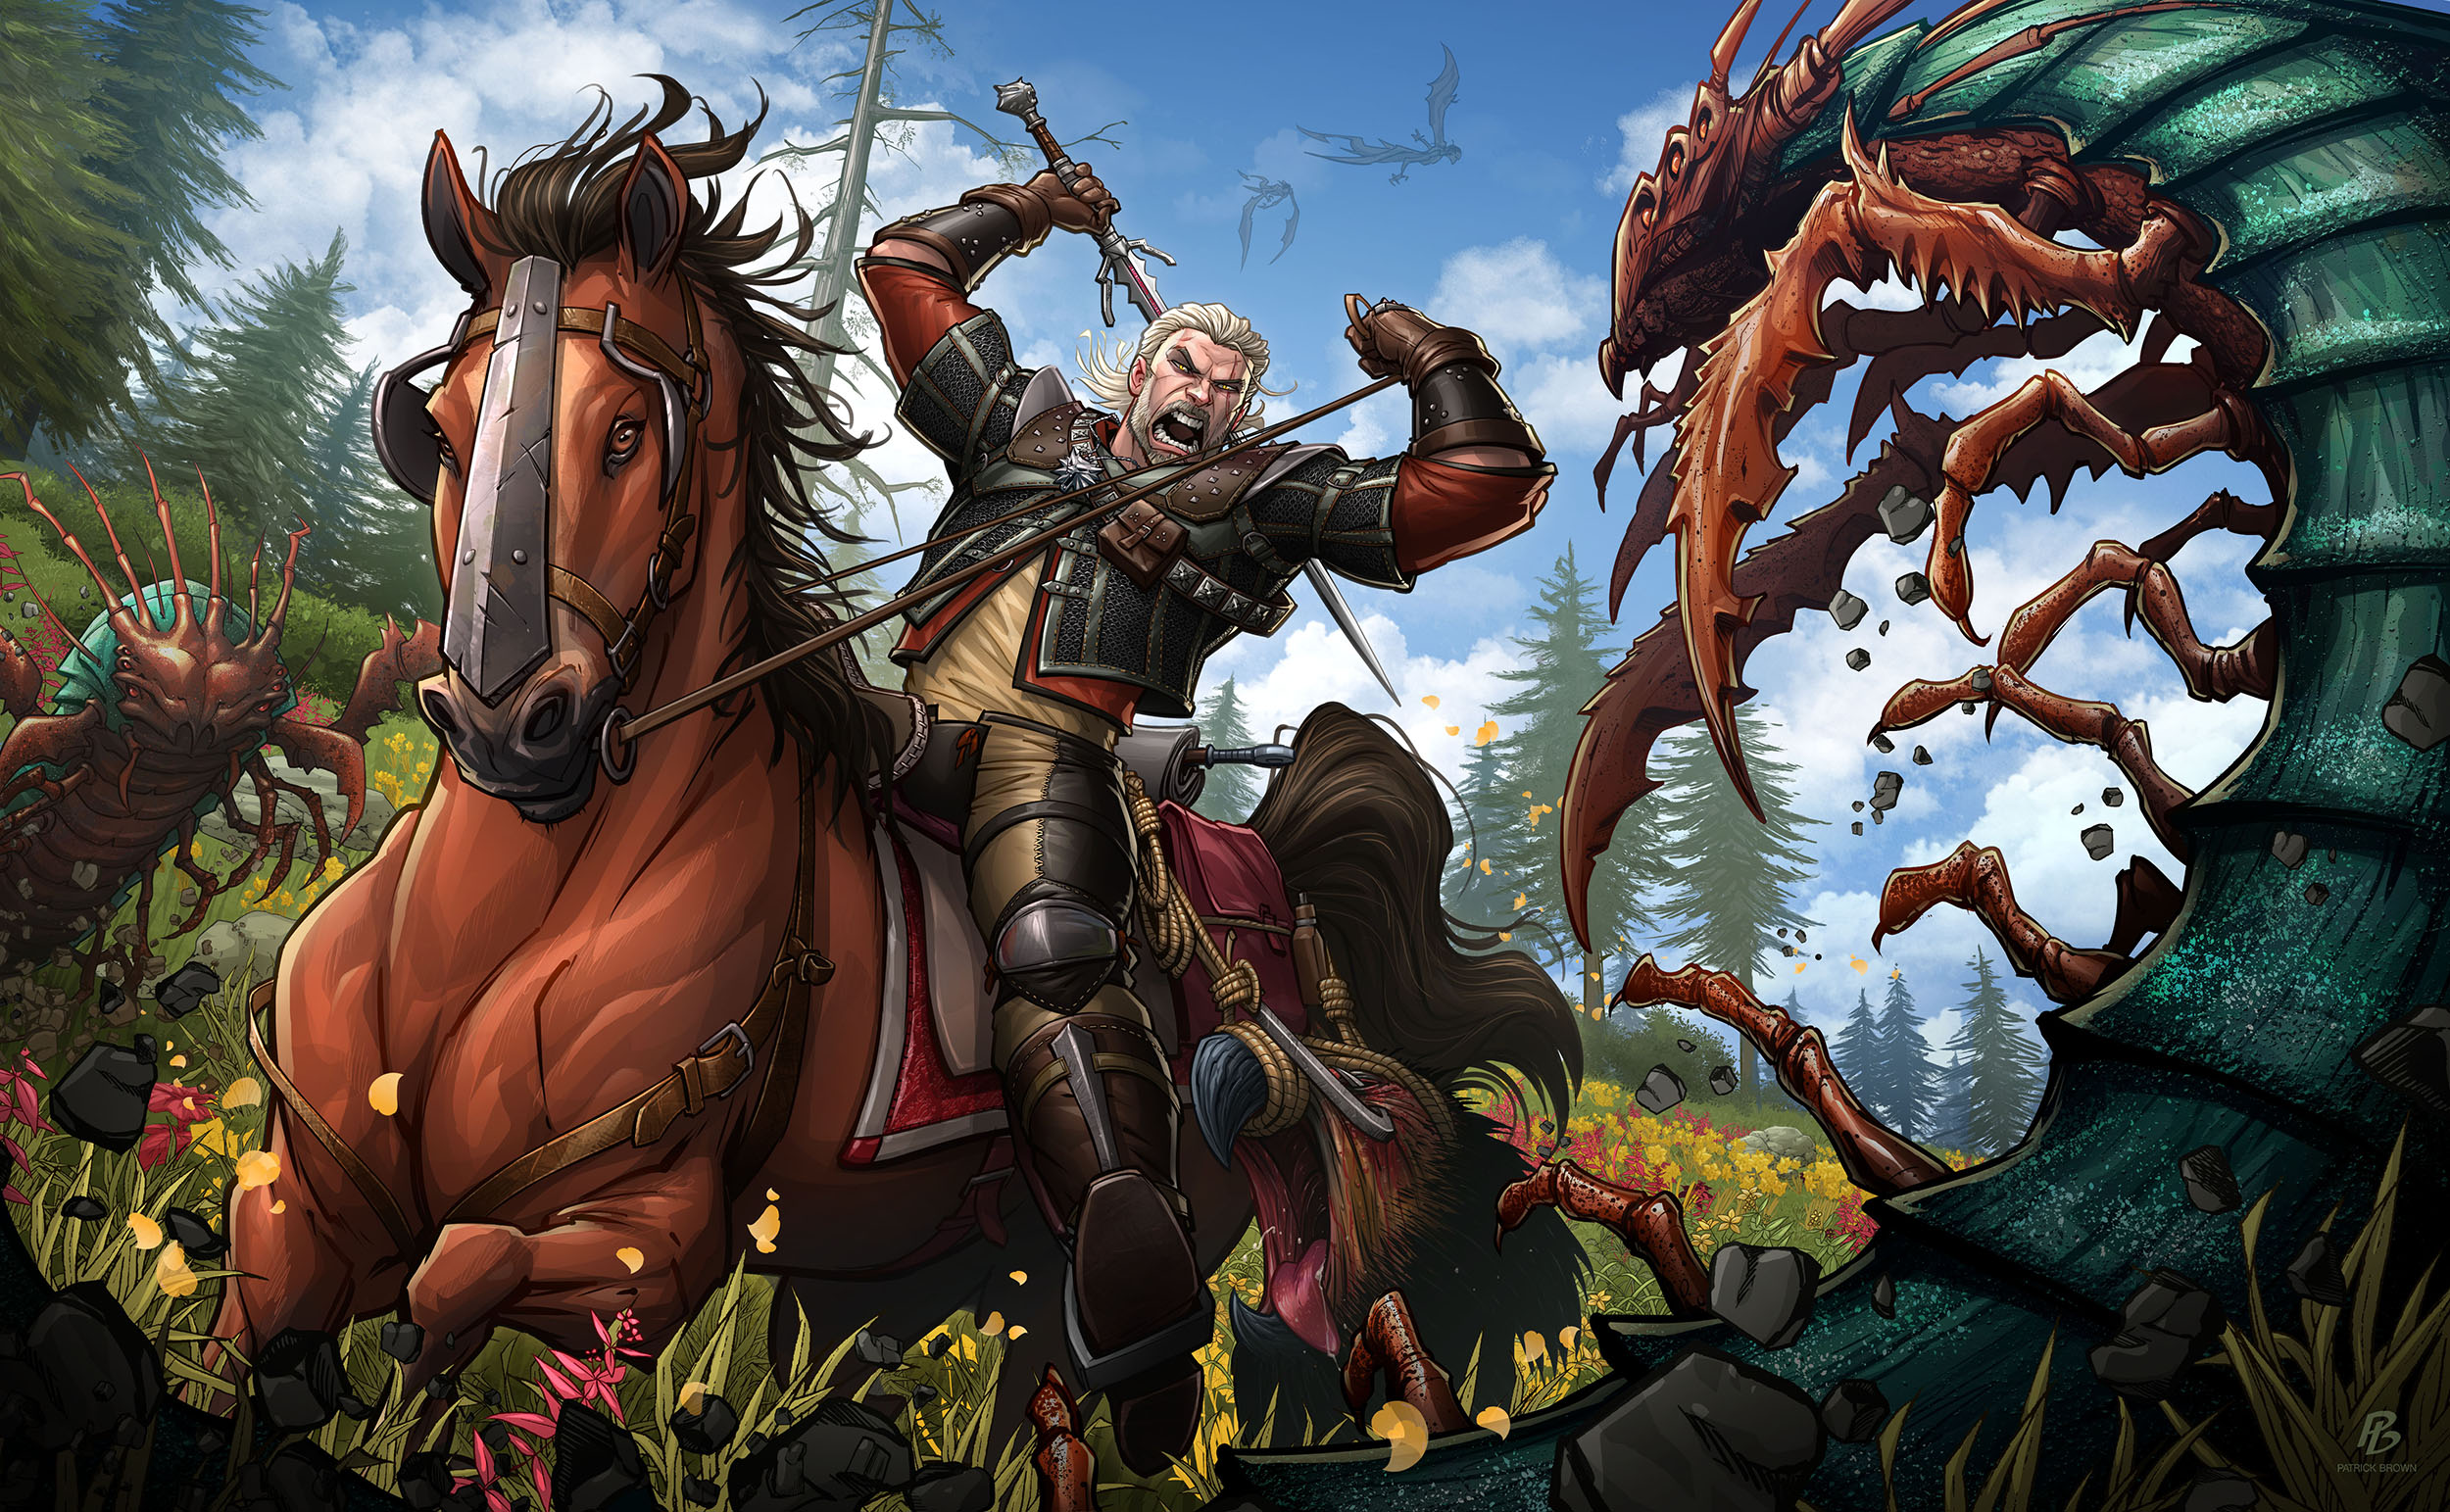 The Witcher Wild Hunt: Blood and Wine